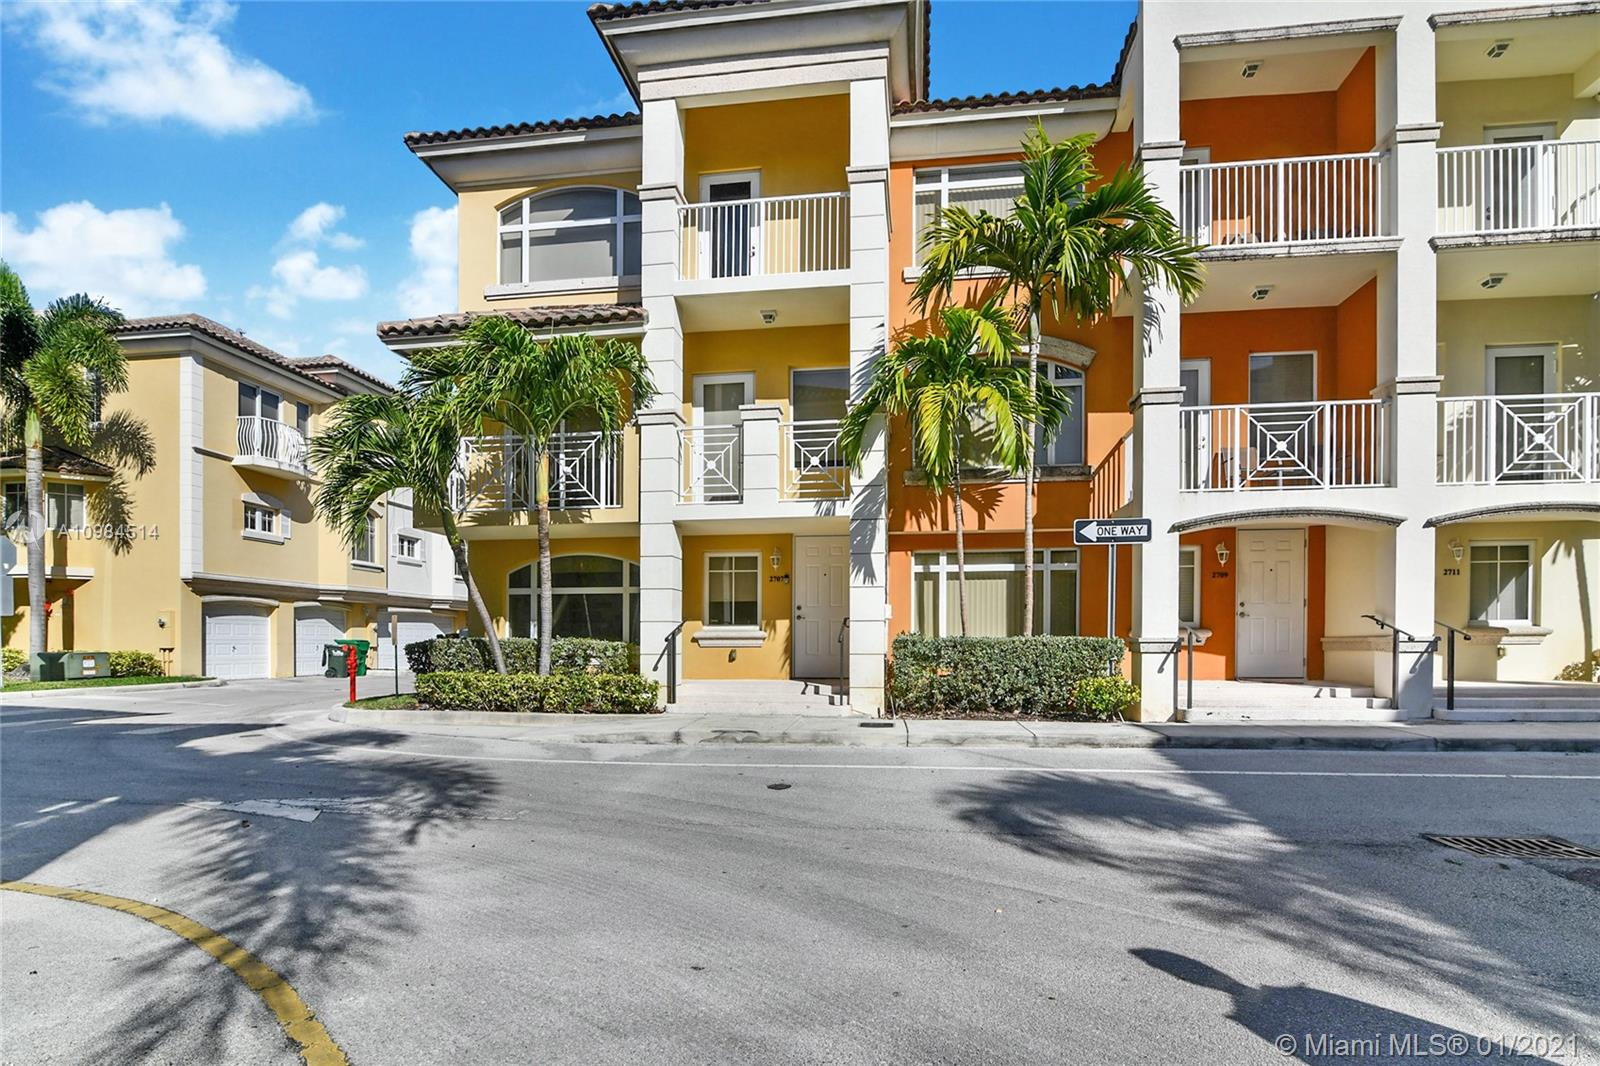 """GORGEOUS TRI-LEVEL TOWNHOUSE IN GATED AND SAFE COMMUNITY """"TERZETTO""""IN AVENTURA. ON THE FIRST FLOOR YOUR DEN AND A FULL SIZED TWO- CAR GARAGE, SECOND FLOOR FIND A GREAT OPEN LAYOUT WITH A WHITE LARGE FORMAT PORCELANATO FLOORING THROUGHOUT, LIVING ROOM , KITCHEN WITH ALL MODERN STAINLESS STEEL APPLIANCES WITH CUSTOM MADE PANTRY, BREAKFAST AREA, HALF BATHROOM AND A PRIVATE OPEN BALCONY!. THE THIRD FLOOR WITH BEAUTIFUL VINYL MEDIUM BROWN WOOD COLOR FLOORING, MASTER BEDROOM WITH MASTER BATHROOM AND CUSTOM WALK IN CLOSET PLUS 2 BEDROOMS WITH CUSTOM CLOSETS AND A BATHROOM. COMMUNITY HAS SWIMMING POOL , RECREATION AREA , GUEST PARKING AND GYM. AWESOME LOCATION  JUST AROUND THE CORNER FROM AMAZING RESTAURANTS, SHOPPING , AMAZING SCHOOLS  AND SUNNY ISLES BEACHES."""